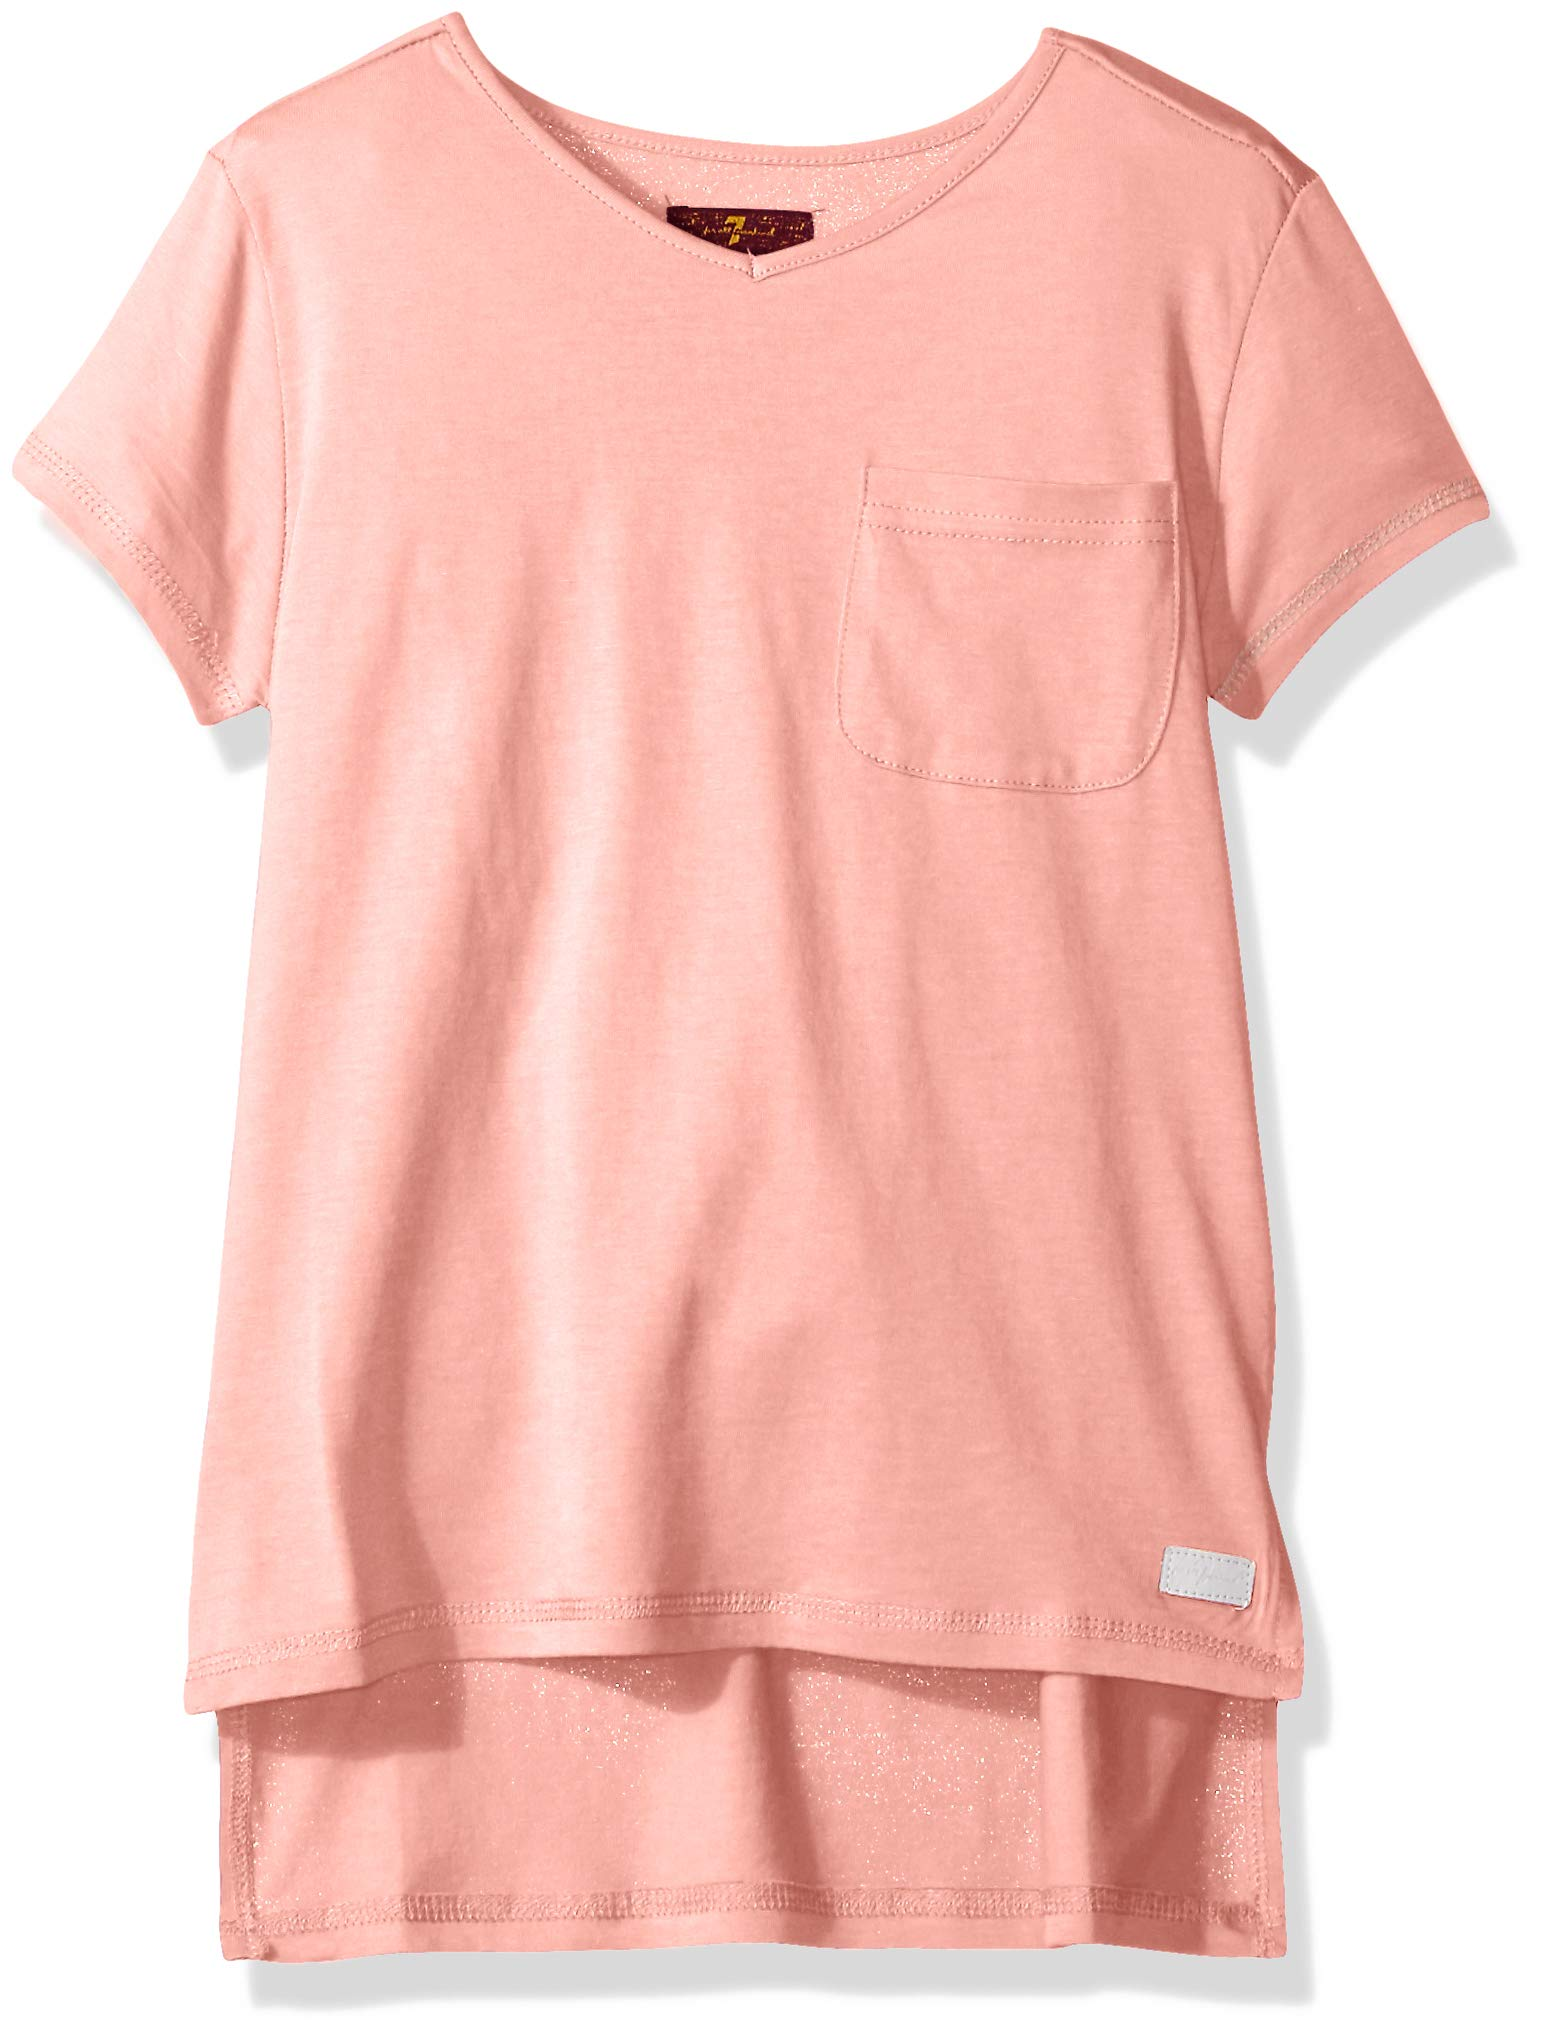 7 For All Mankind Girls' High Low T-Shirt